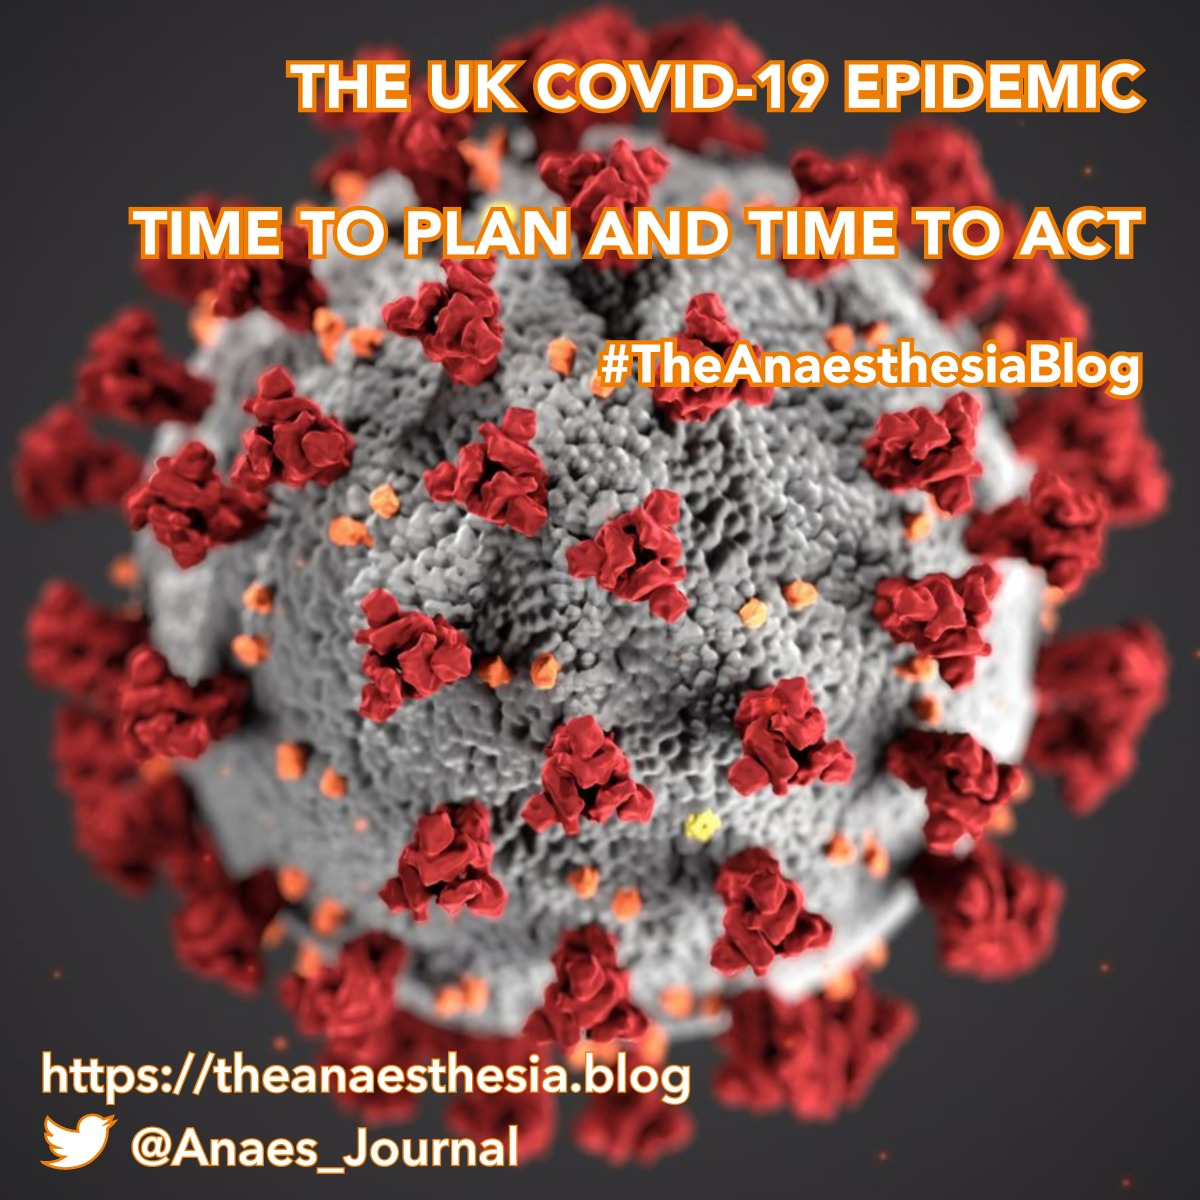 The UK COVID-19 epidemic: time to plan and time to act